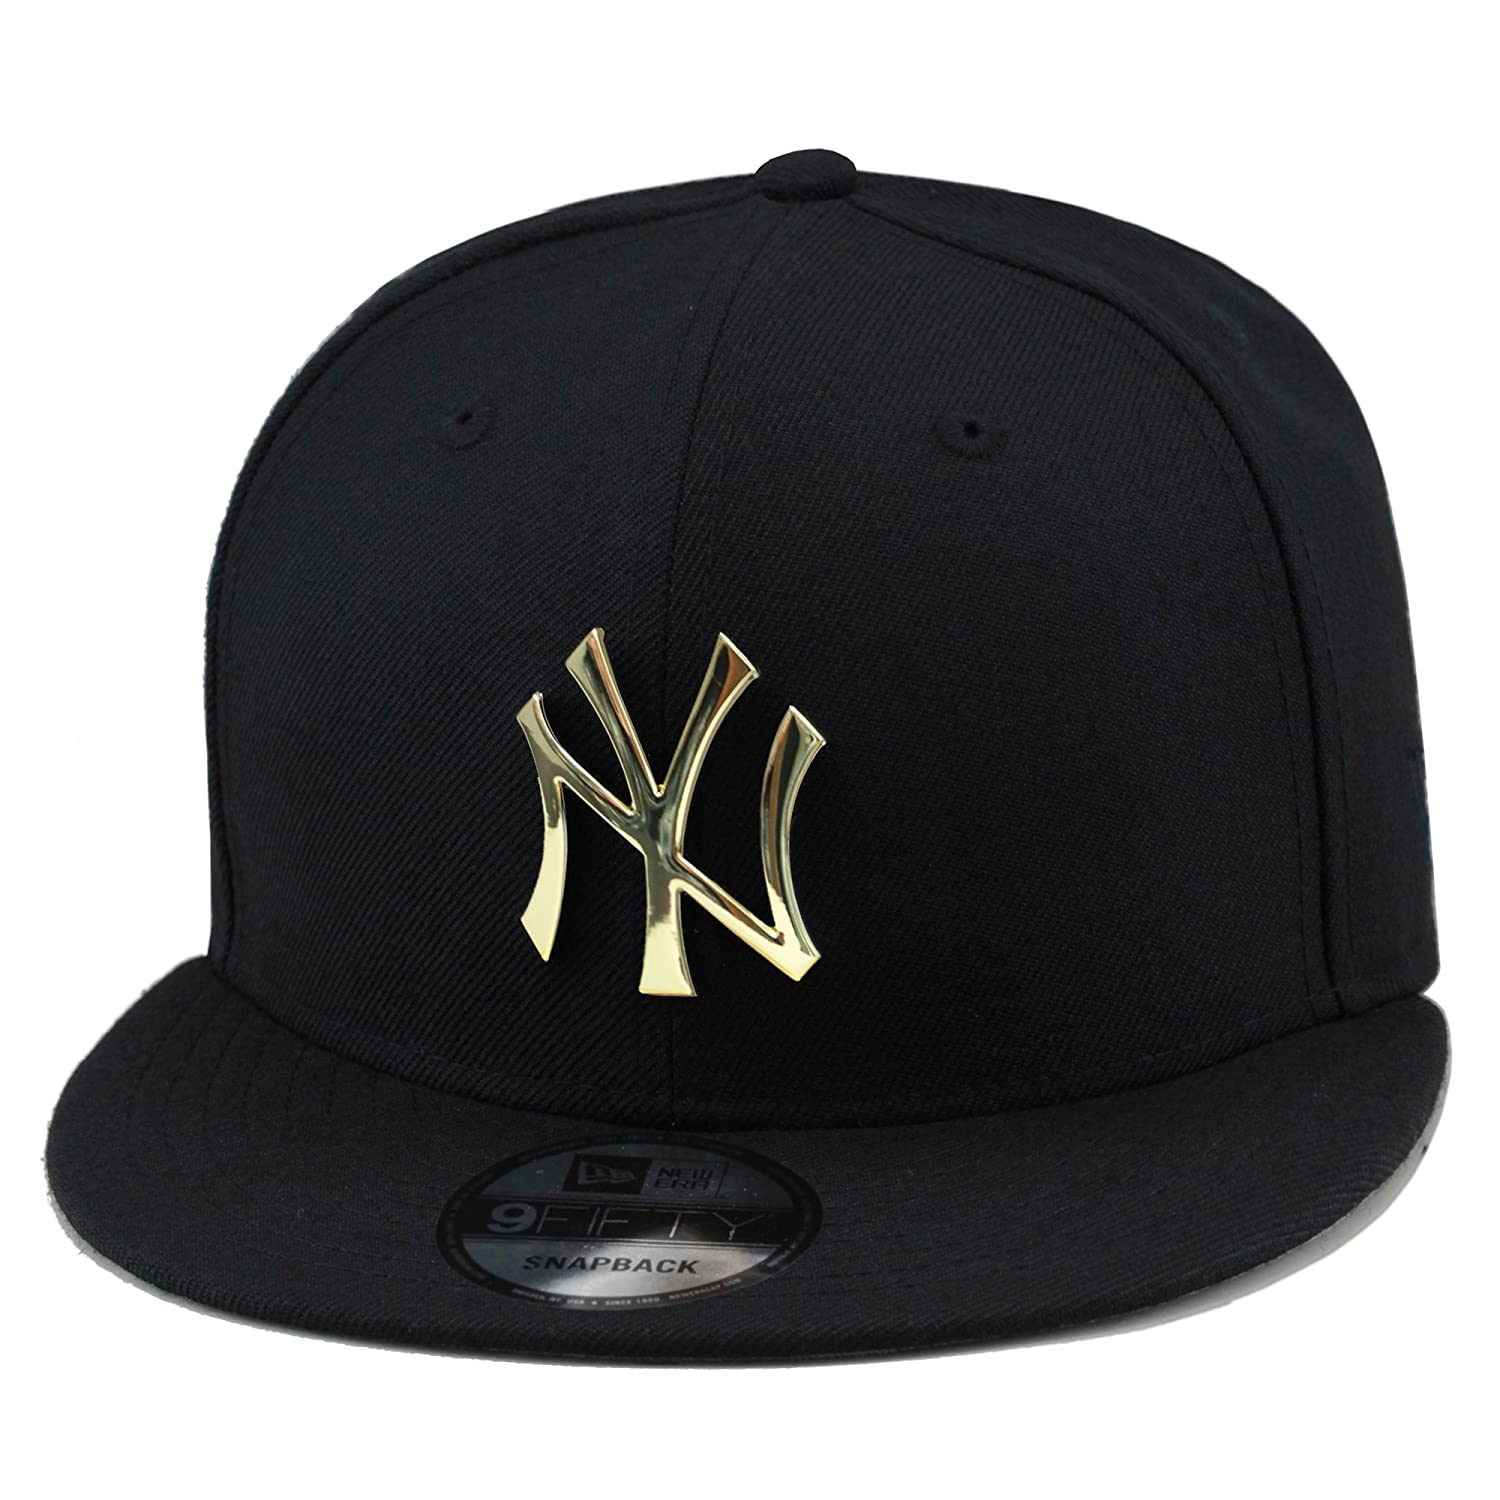 d49c647f87a Amazon.com   New Era 9fifty New York Yankees Black Gold Metal Badge Snapback  Hat Cap   Sports   Outdoors